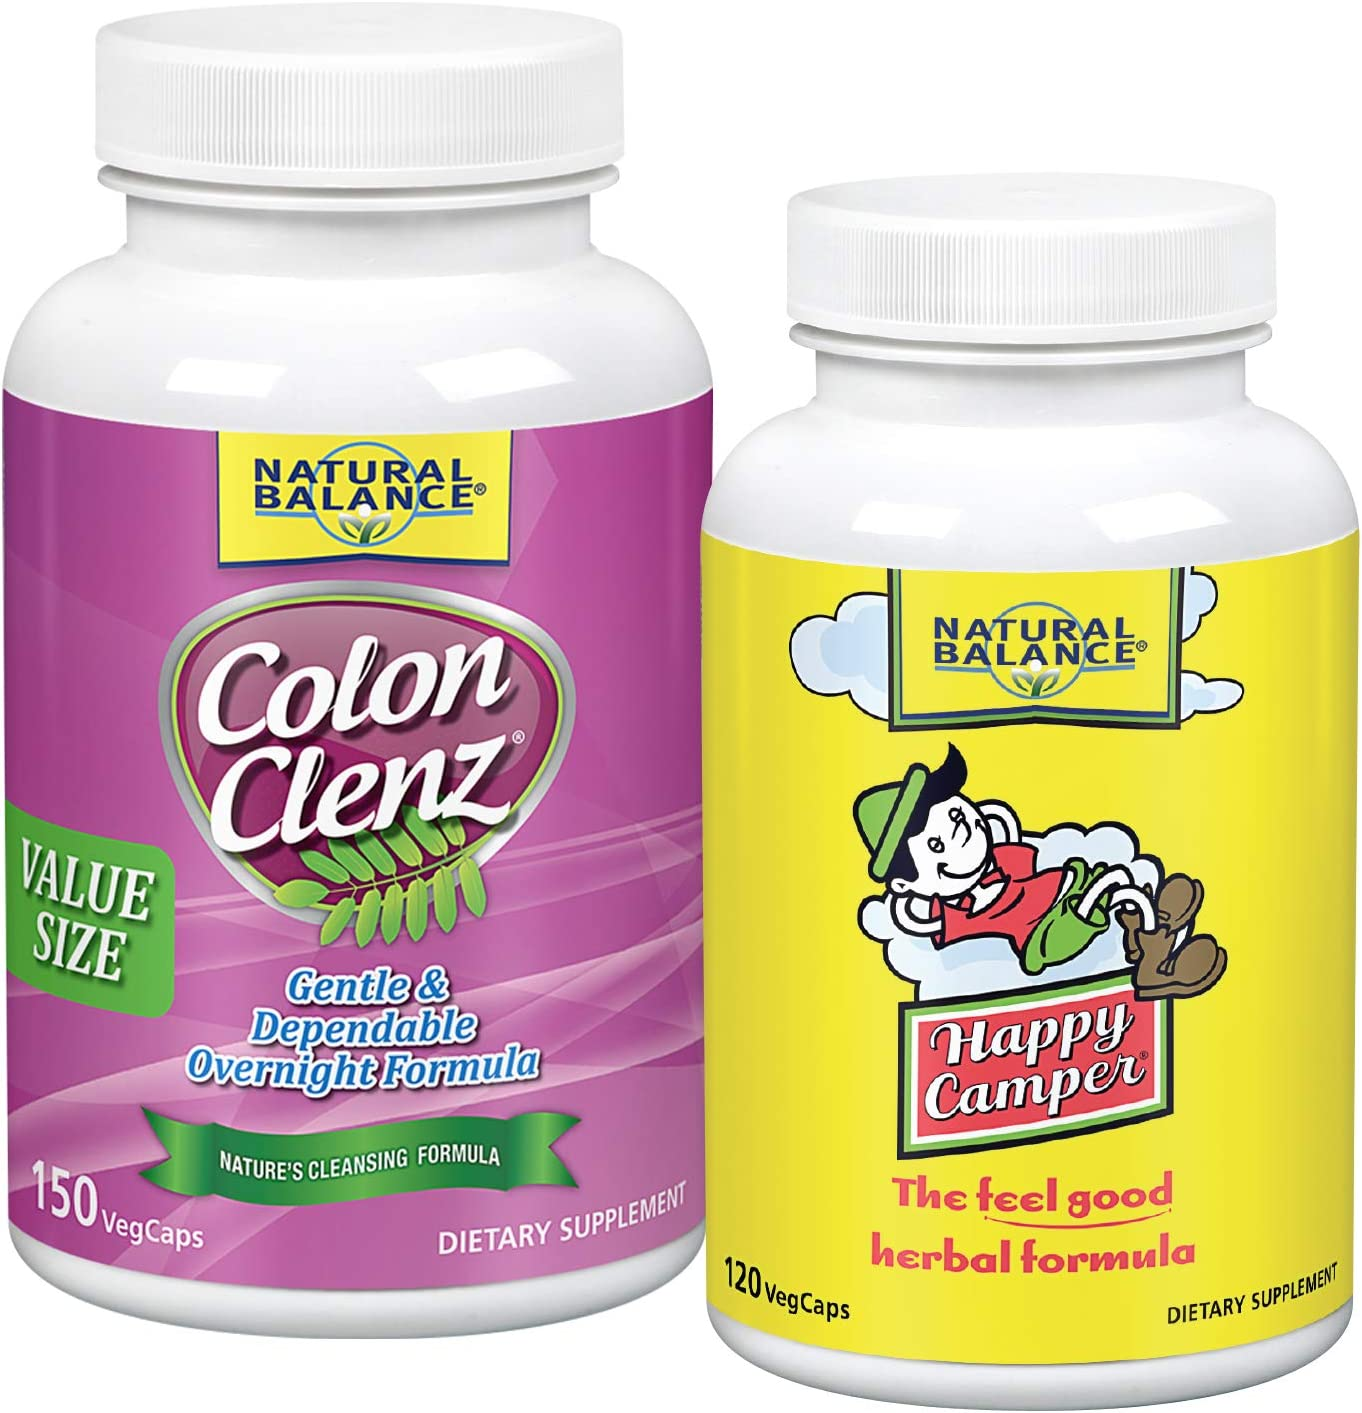 Natural Balance Colon Clenz & Happy Camper Bundle | Herbal Cleanse & Stress Support | 150 Capsules, 120 Capsules